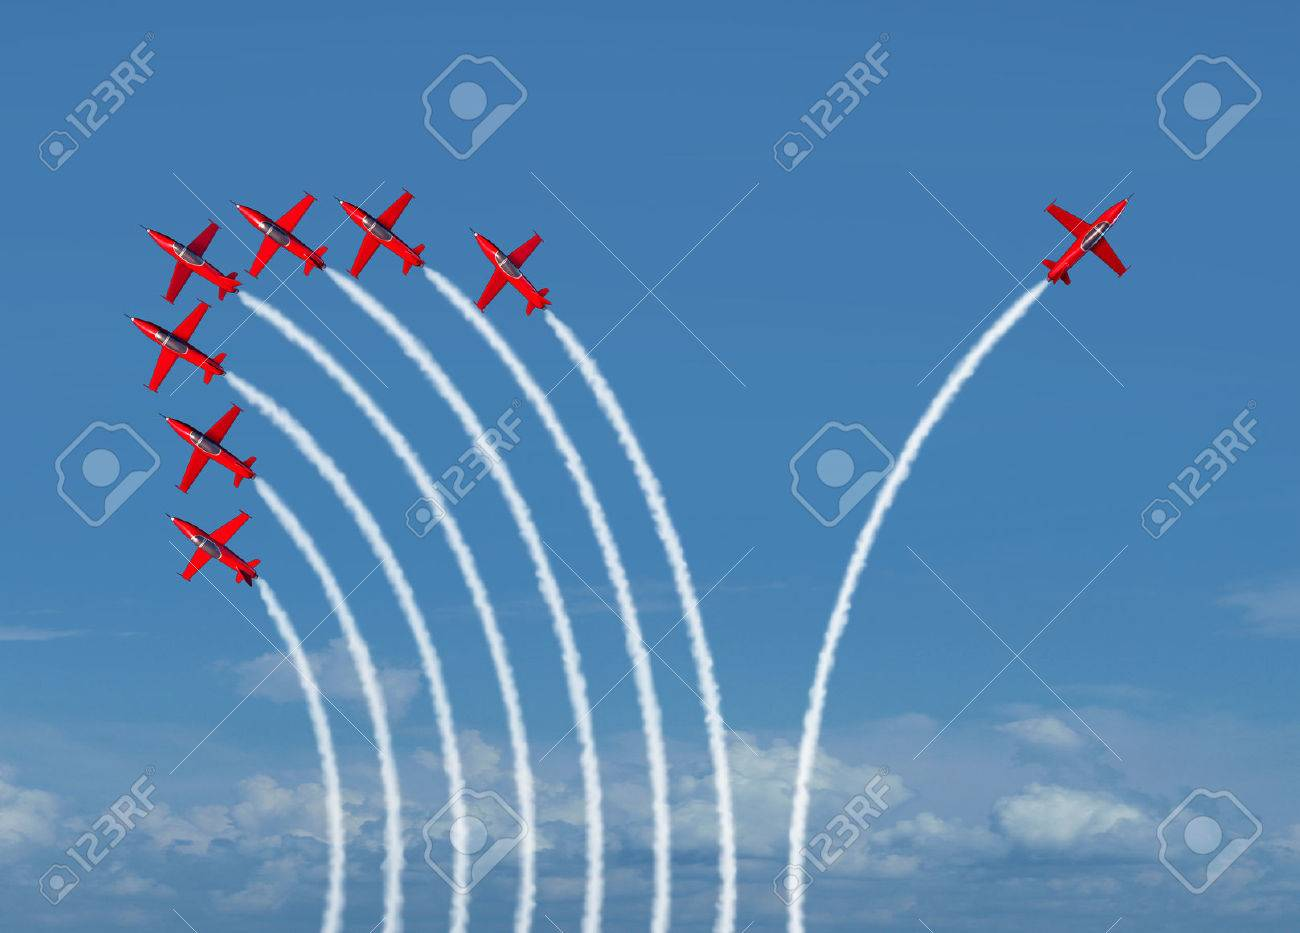 Independent innovation and new thinking concept or leadership symbol of individuality as a group of flying jet airplanes with one individual airplane going in the opposite direction as a business icon for innovative thinker. - 44032850